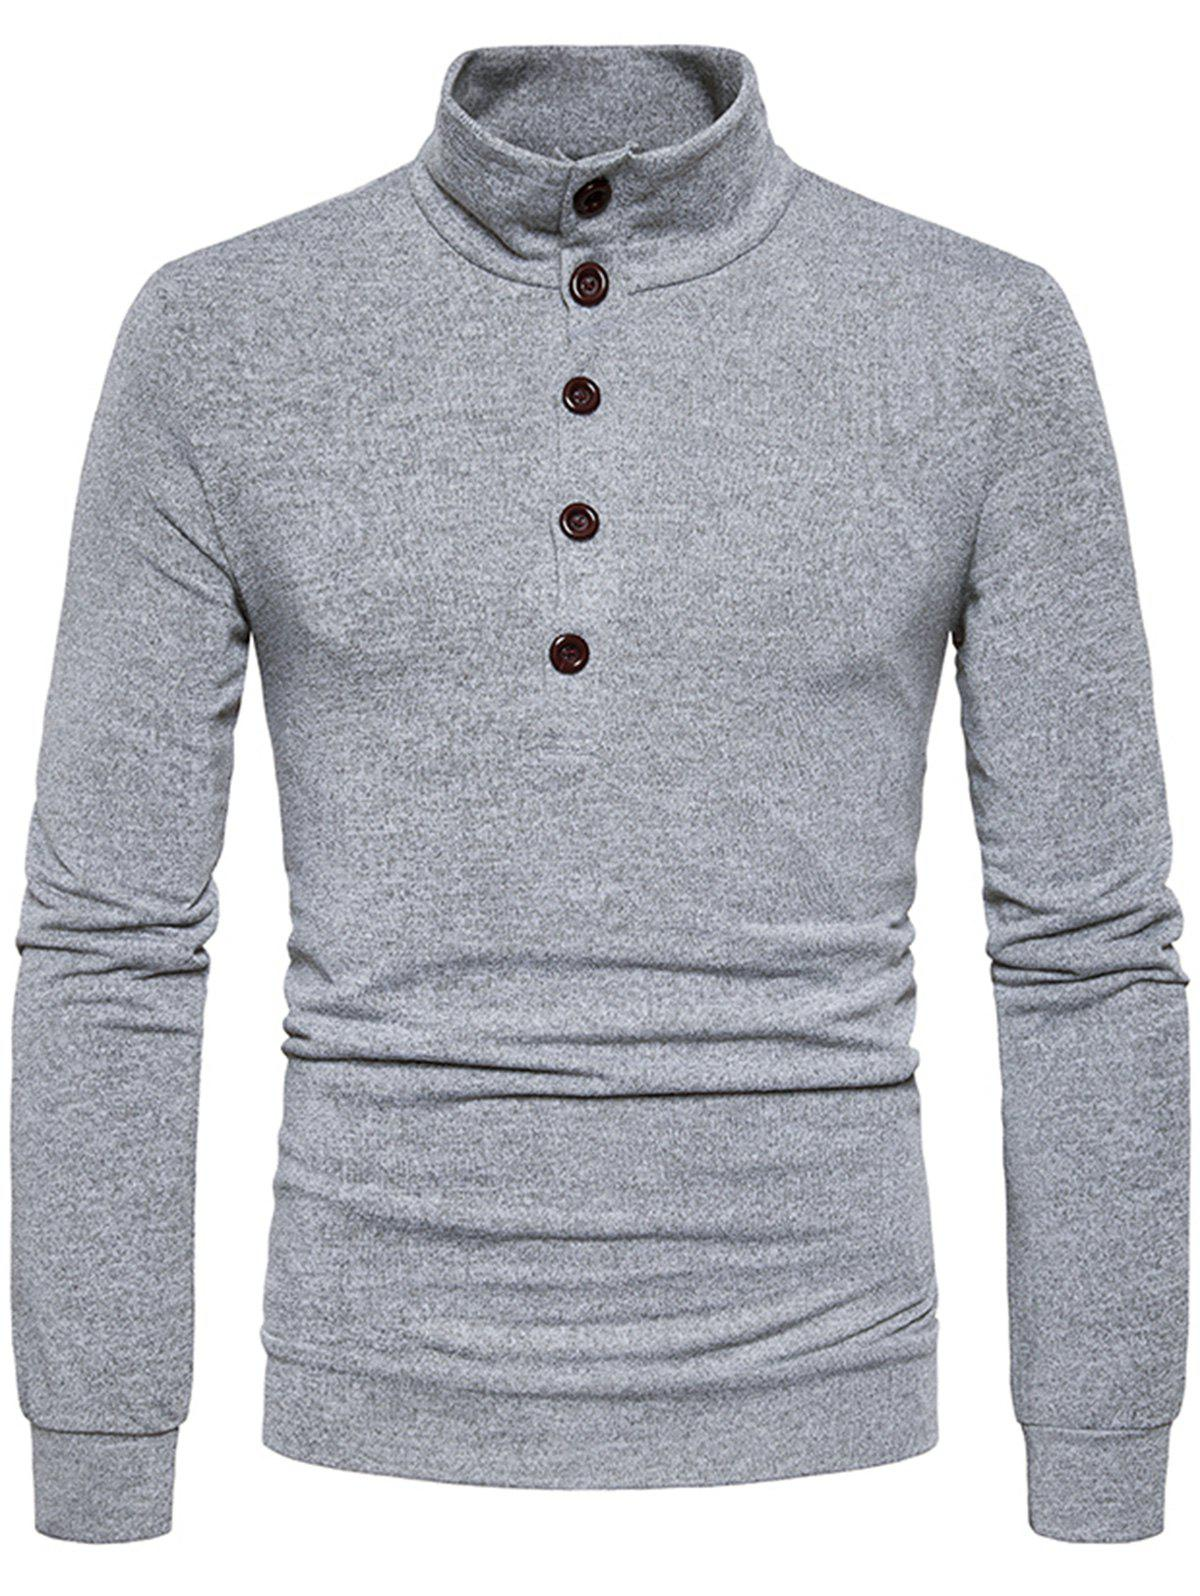 Stand Collar Buttons Long Sleeve Knitted Sweater 231126704